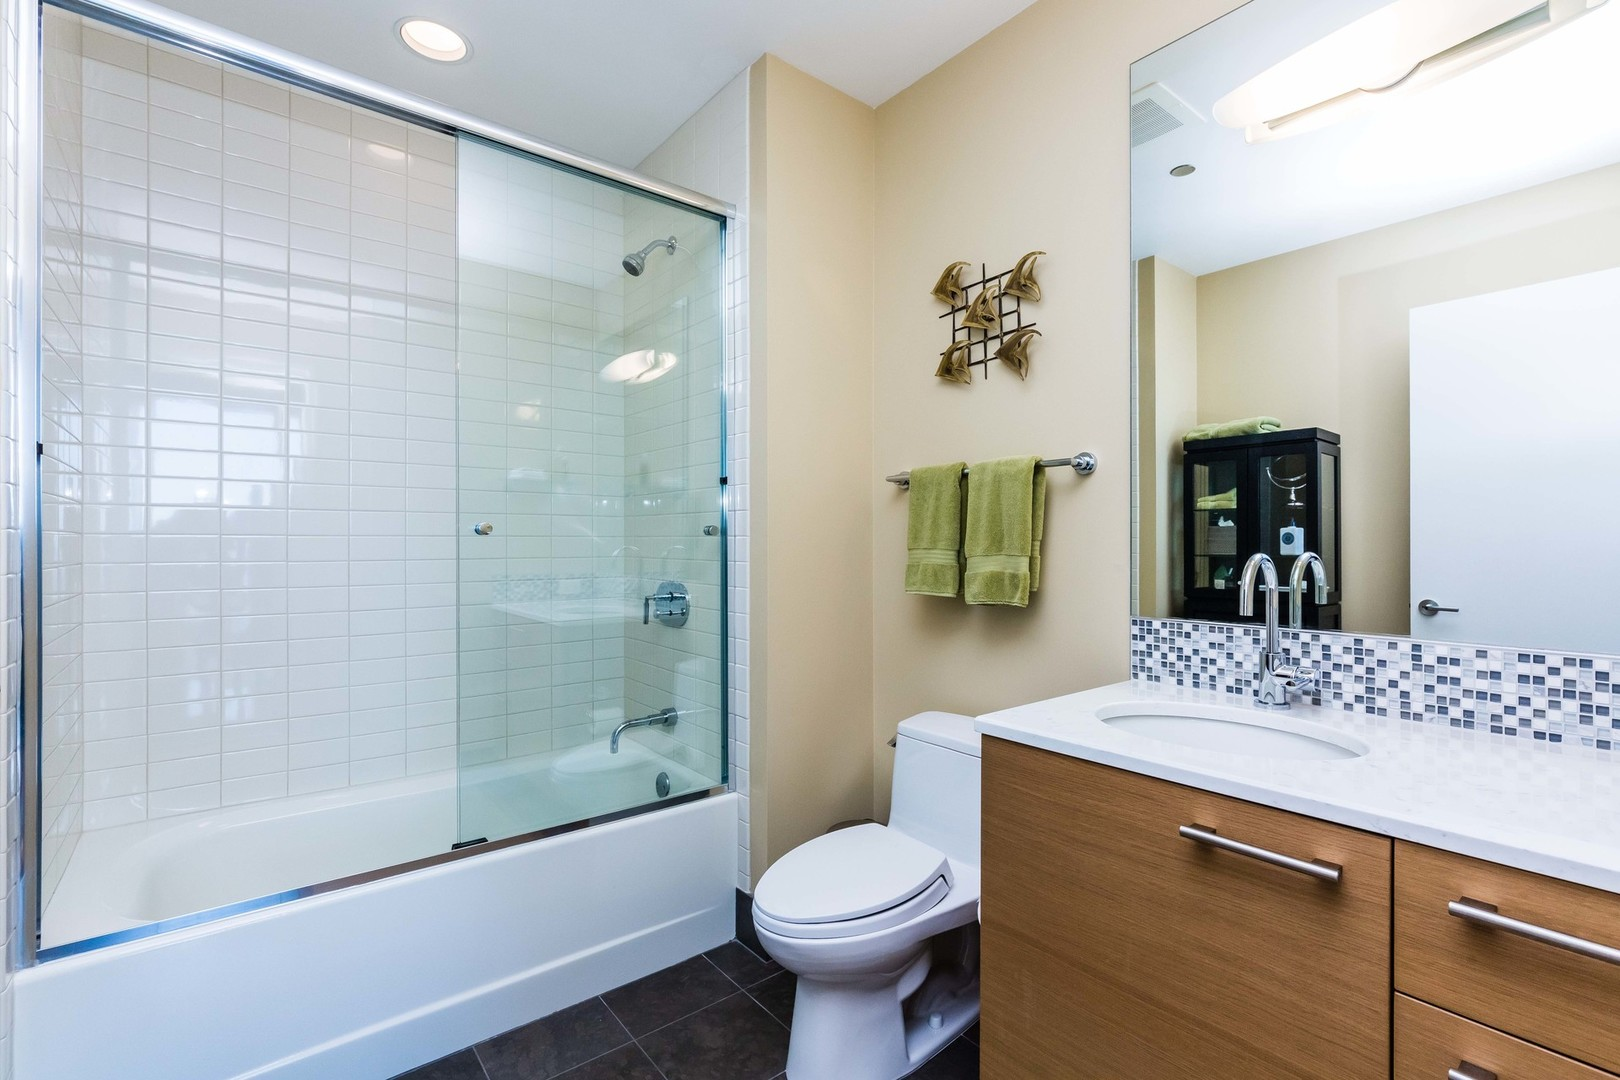 340 East Randolph Street, #4503, Chicago, IL, 60601 | KRAIN  X Bathroom Space Design on space elevator designs, space art designs, space bedroom designs, space bus designs, space car designs, space door designs, space house designs, space lighting, space room designs, space wall designs, space window designs, space landing designs, space travel designs, space home, space jewelry designs,